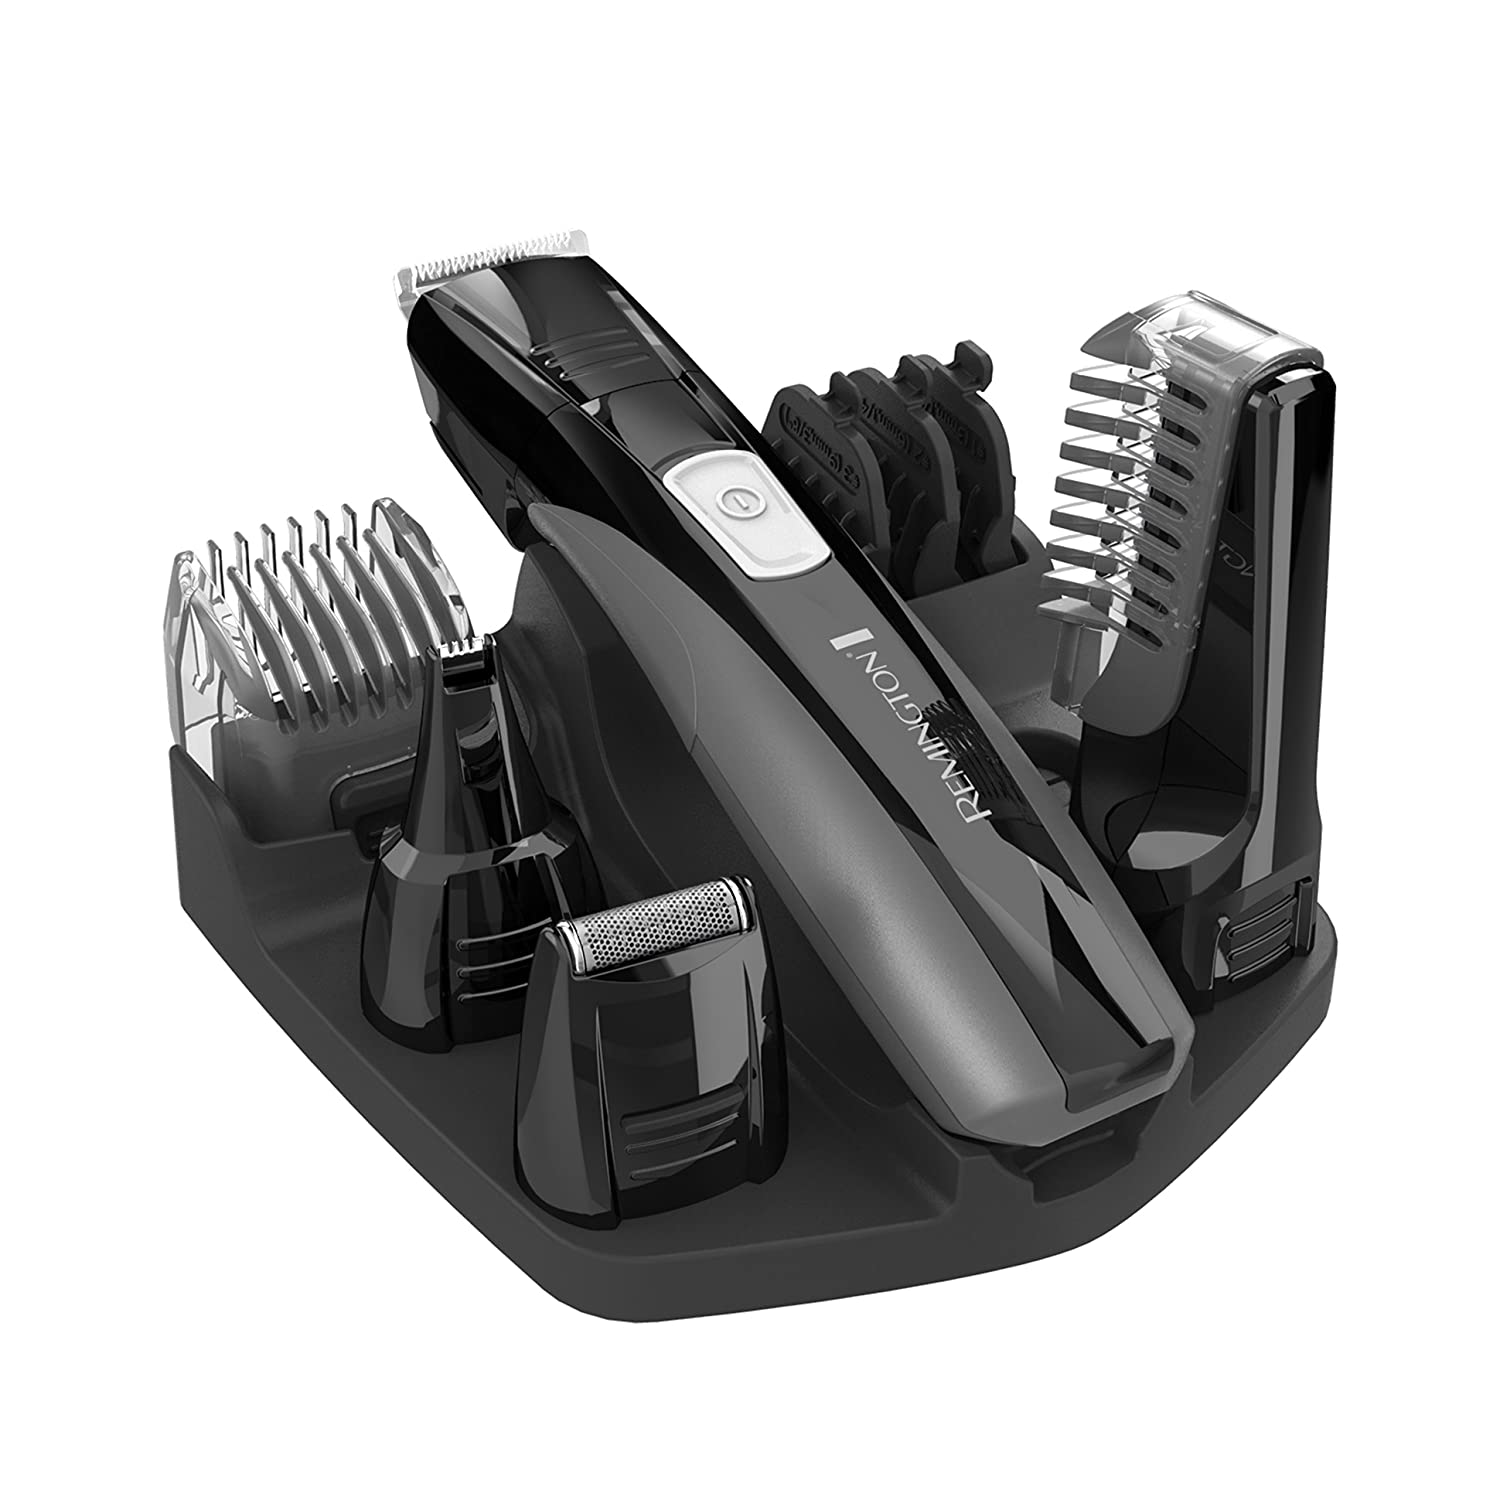 Remington PG525 Body Groomer on stand with 10 attachments